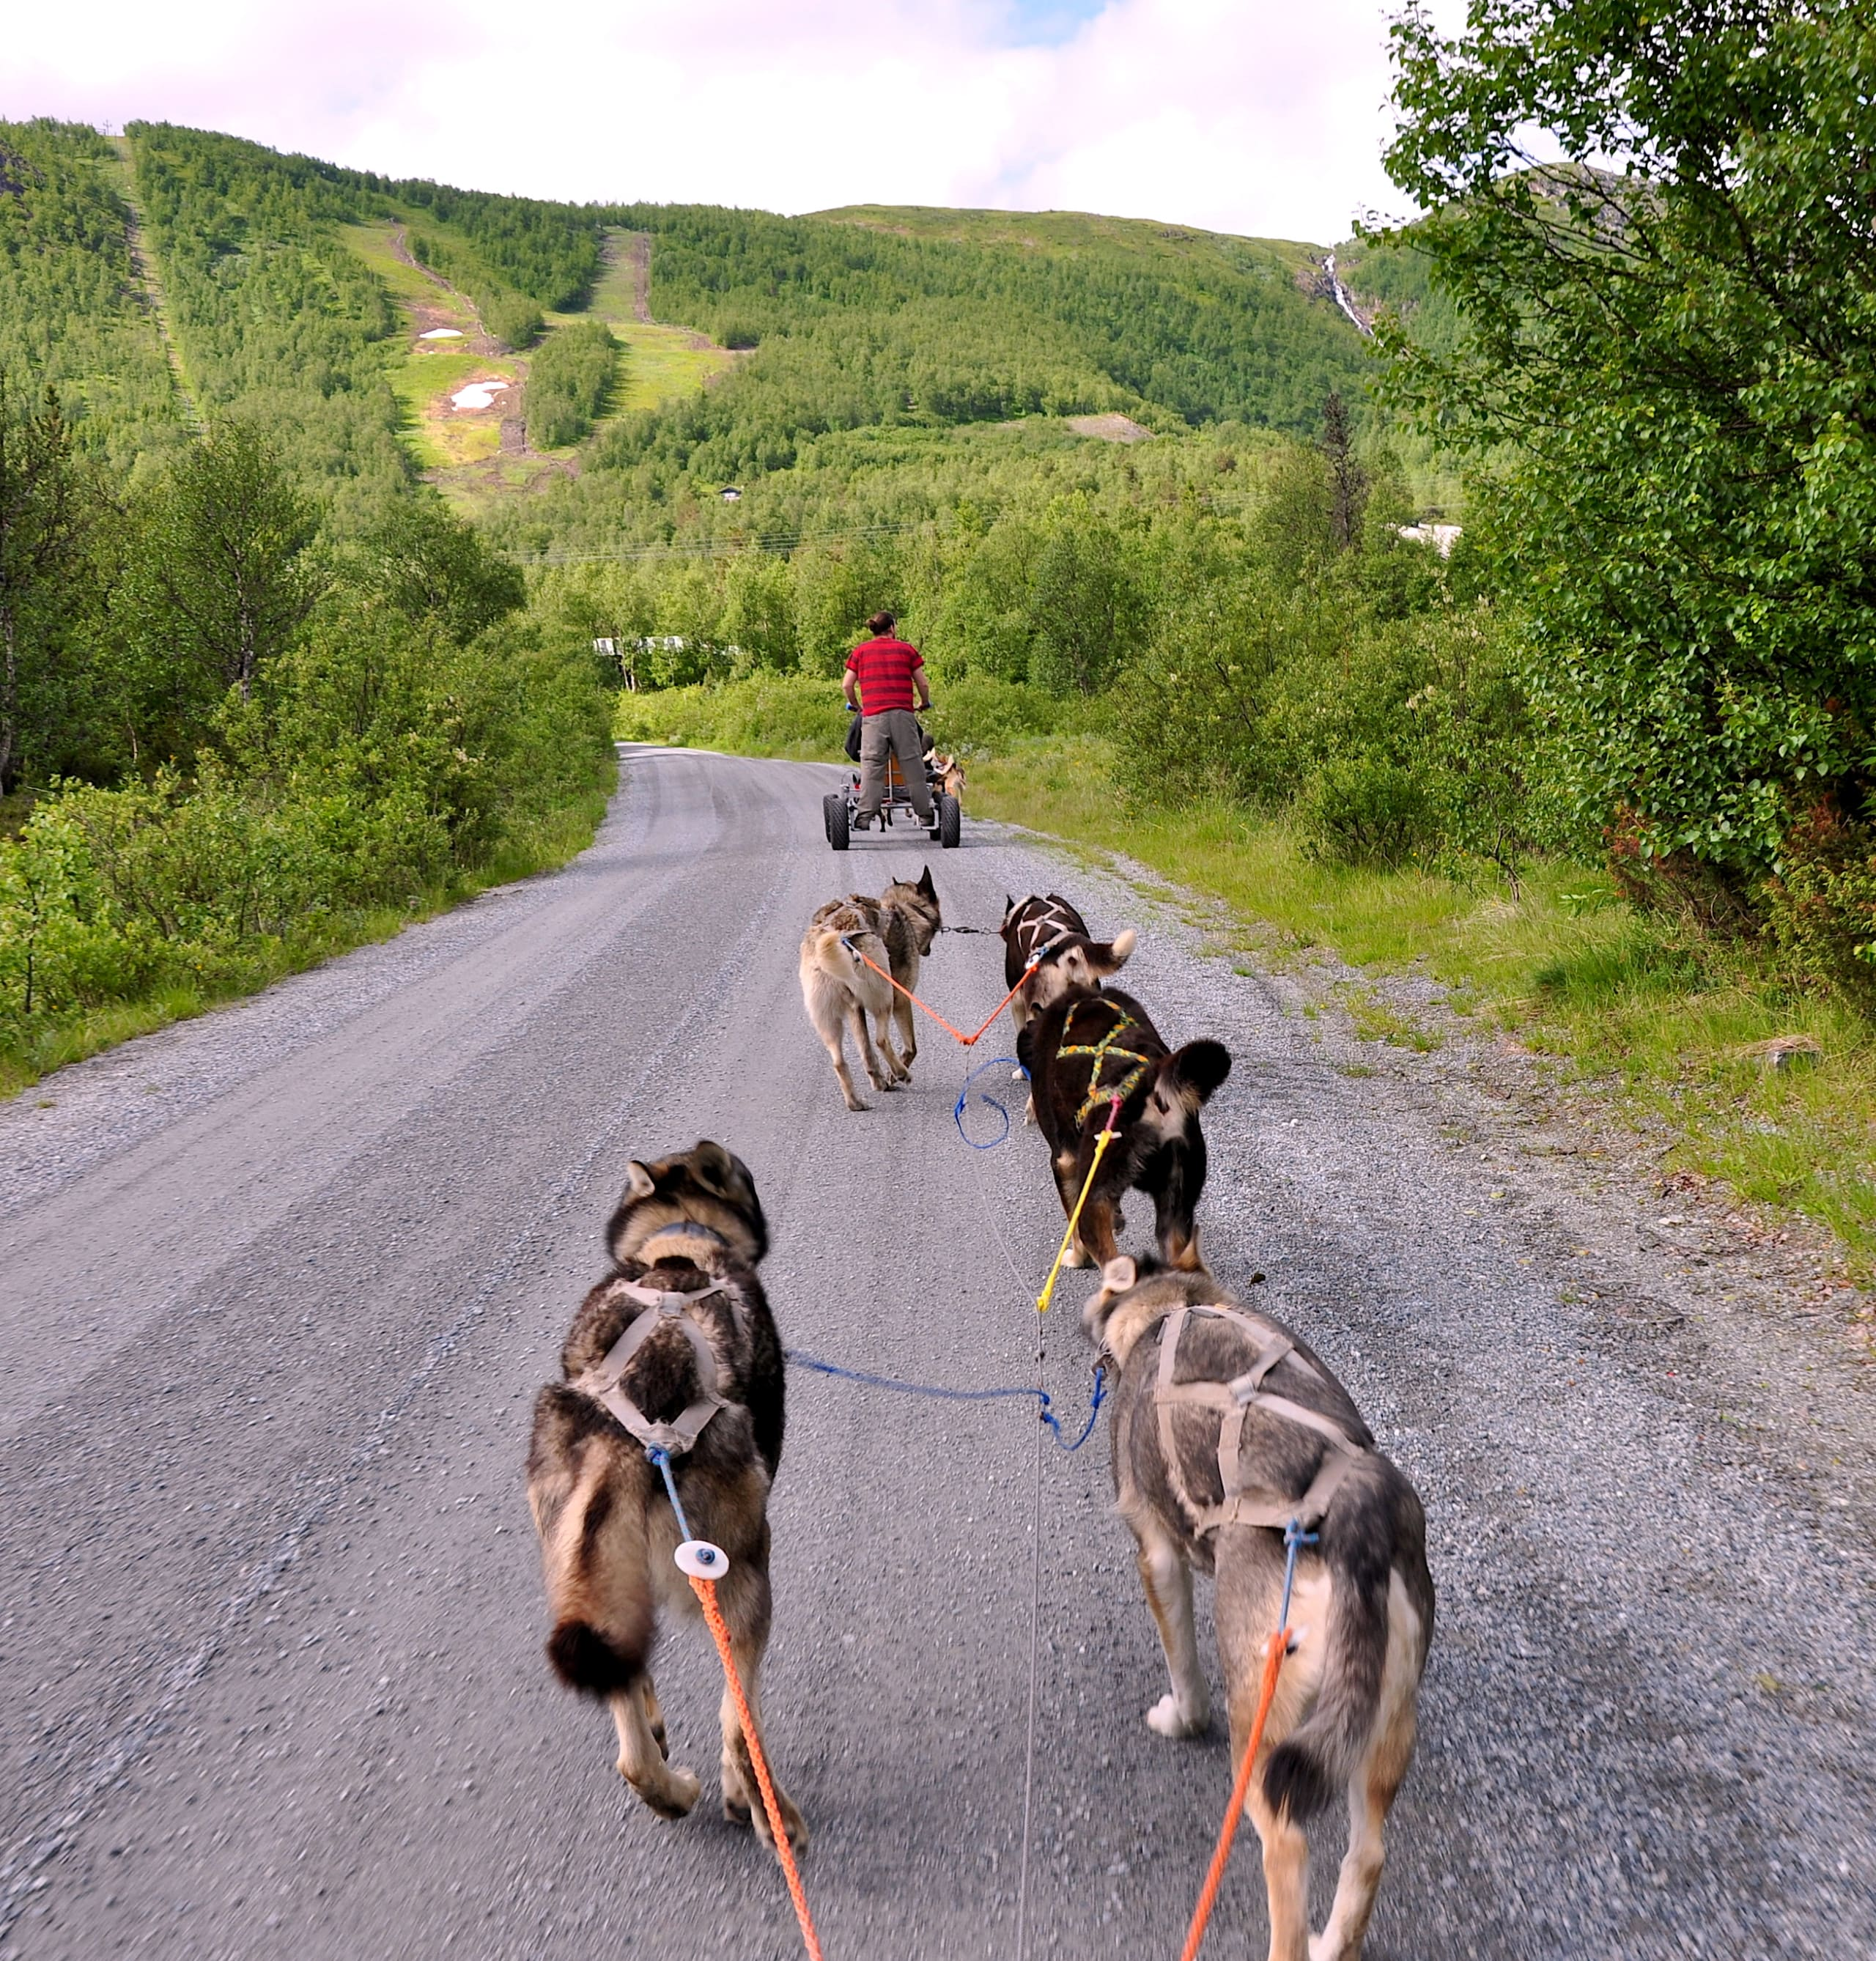 Dog sledding on wheels